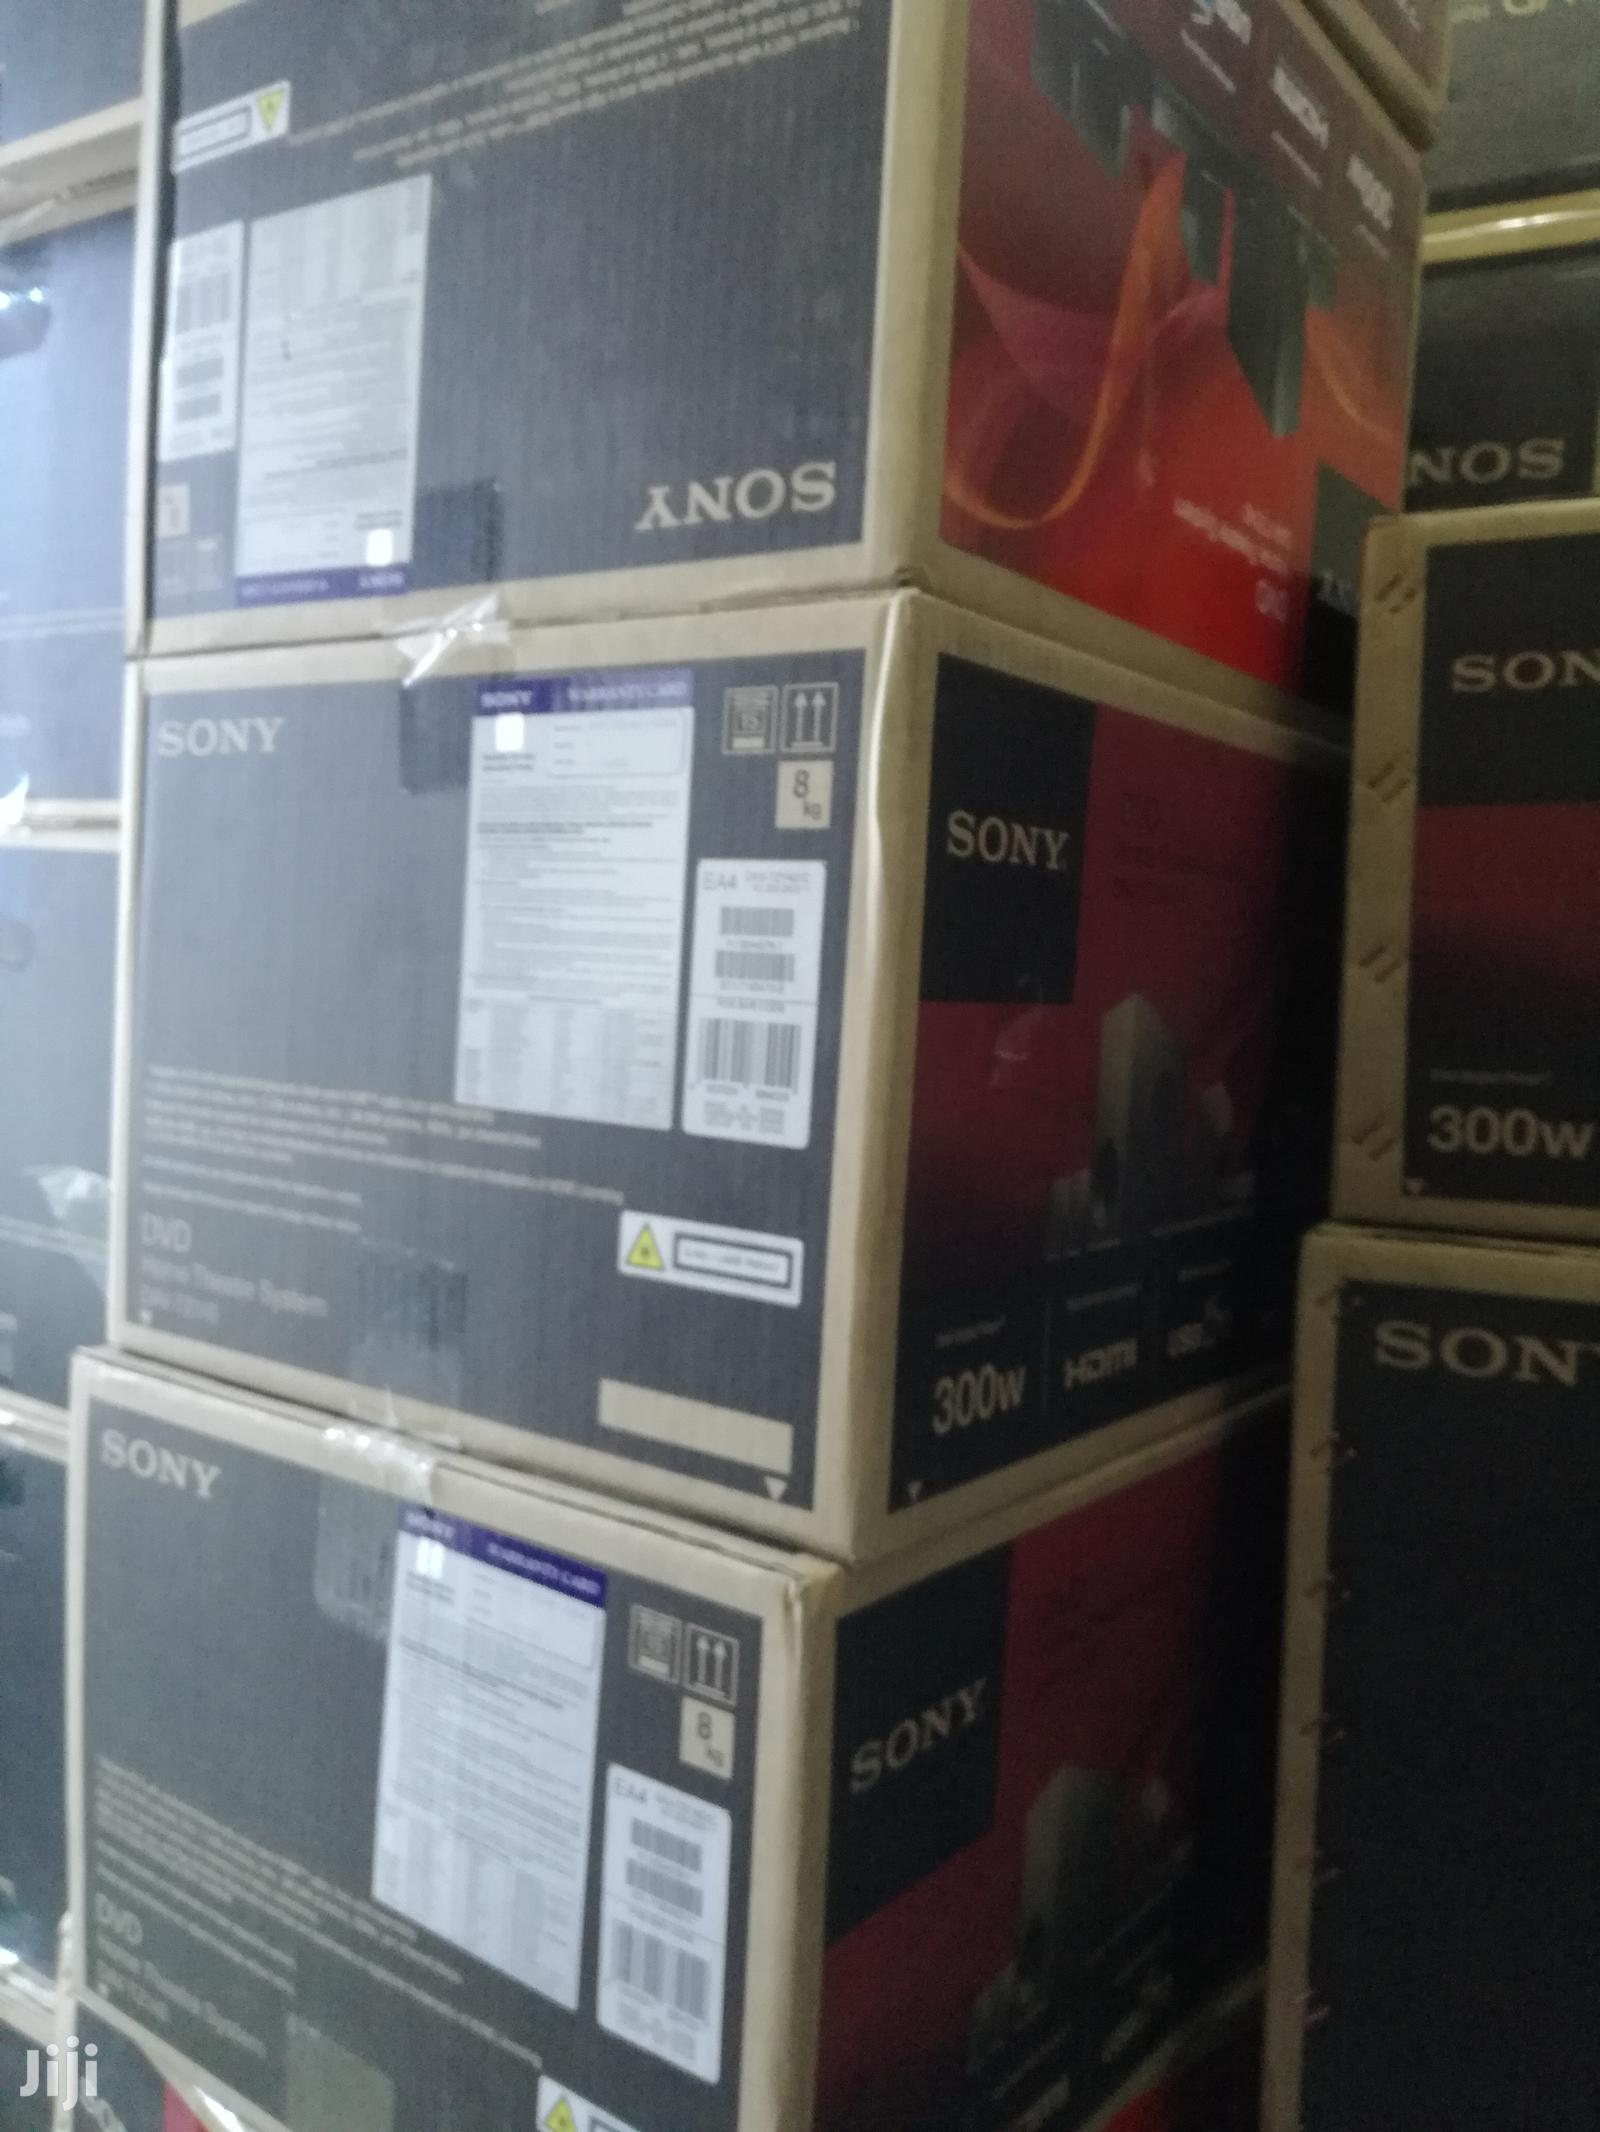 Sony TZ140 300W 5.1ch DVD Home Theater Brand New Sealed